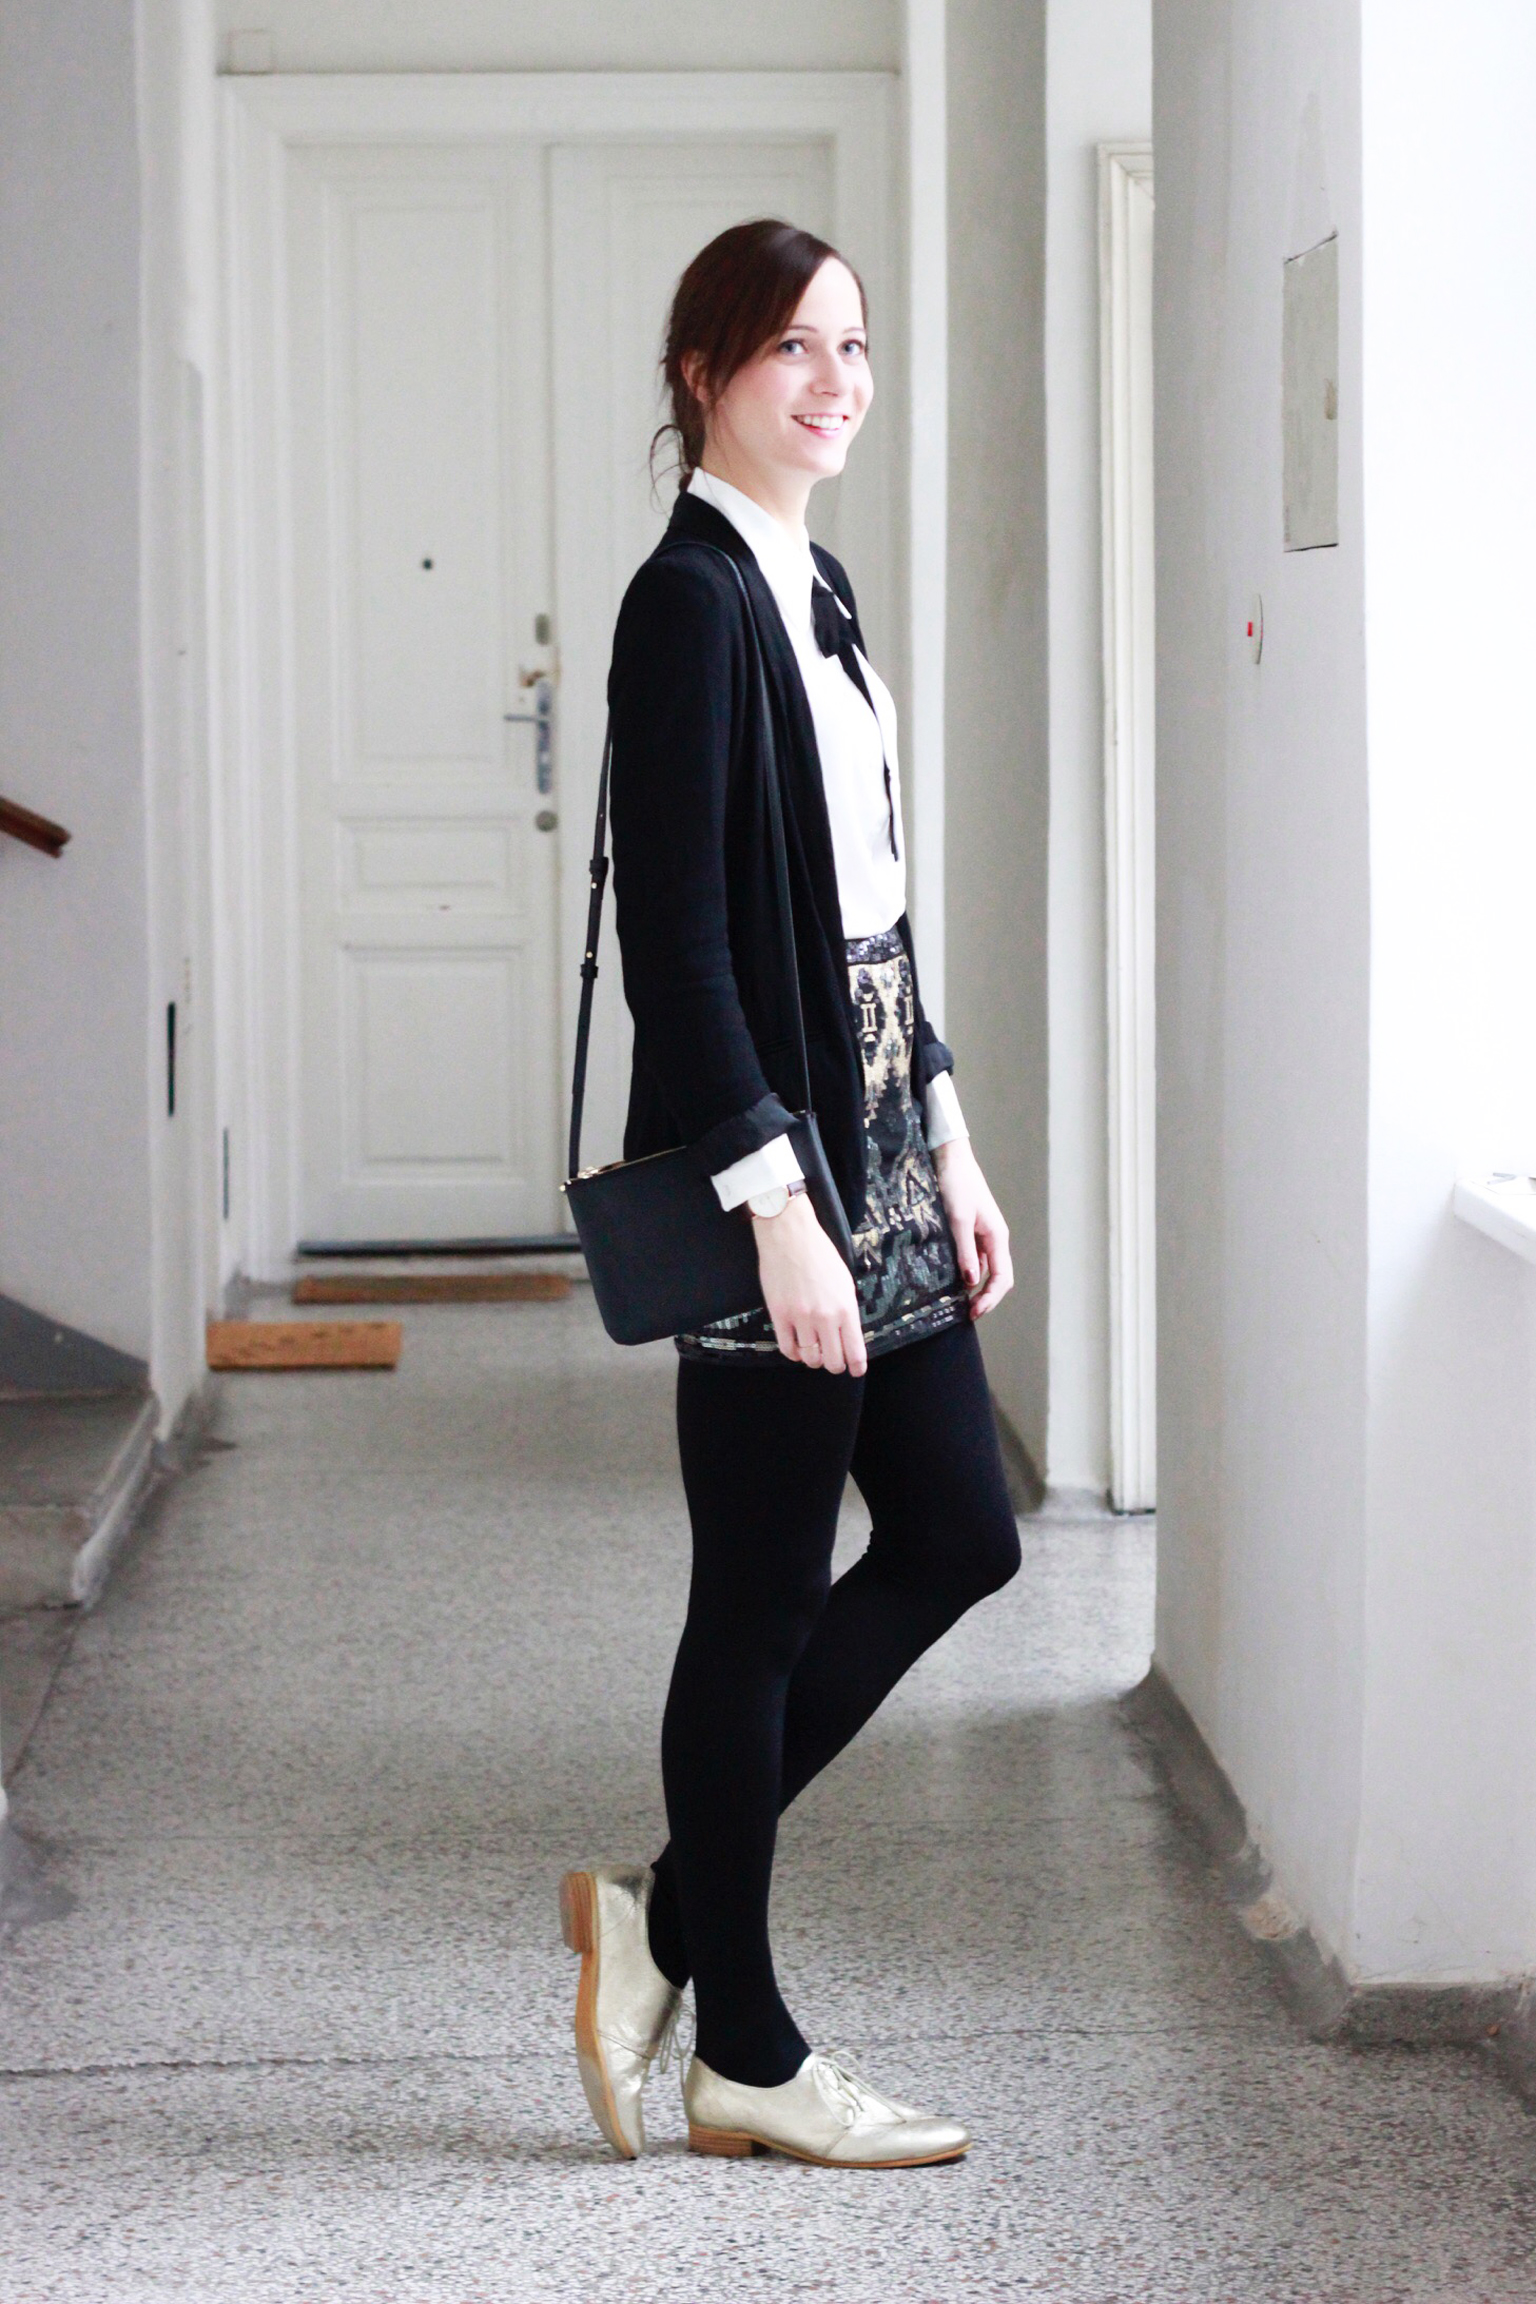 7WTW Silvester Outfit 02